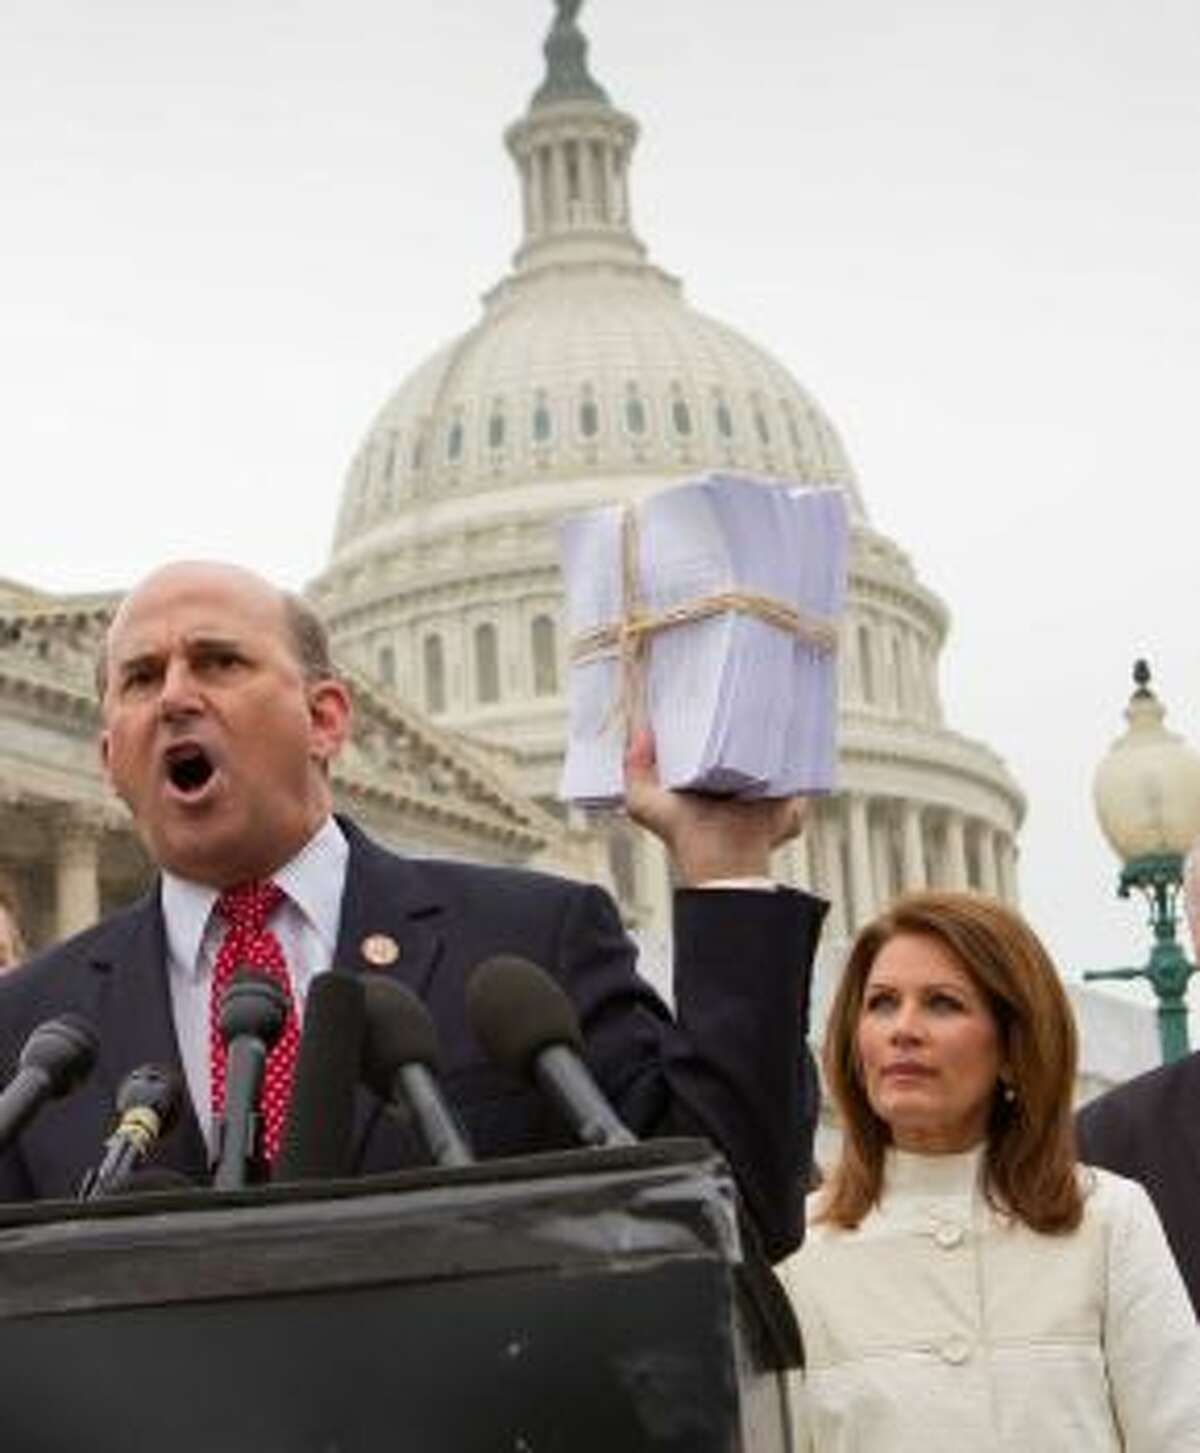 Where Cruz made health care his political trampoline, Rep. Louie Gohmert, R-Texas, has his social commentary to stand by. He and Tea Party darling Michele Bachmann were at the head of a sought-after investigation against a federal official's ties to the Muslim Brotherhood. The move was slammed by both parties.